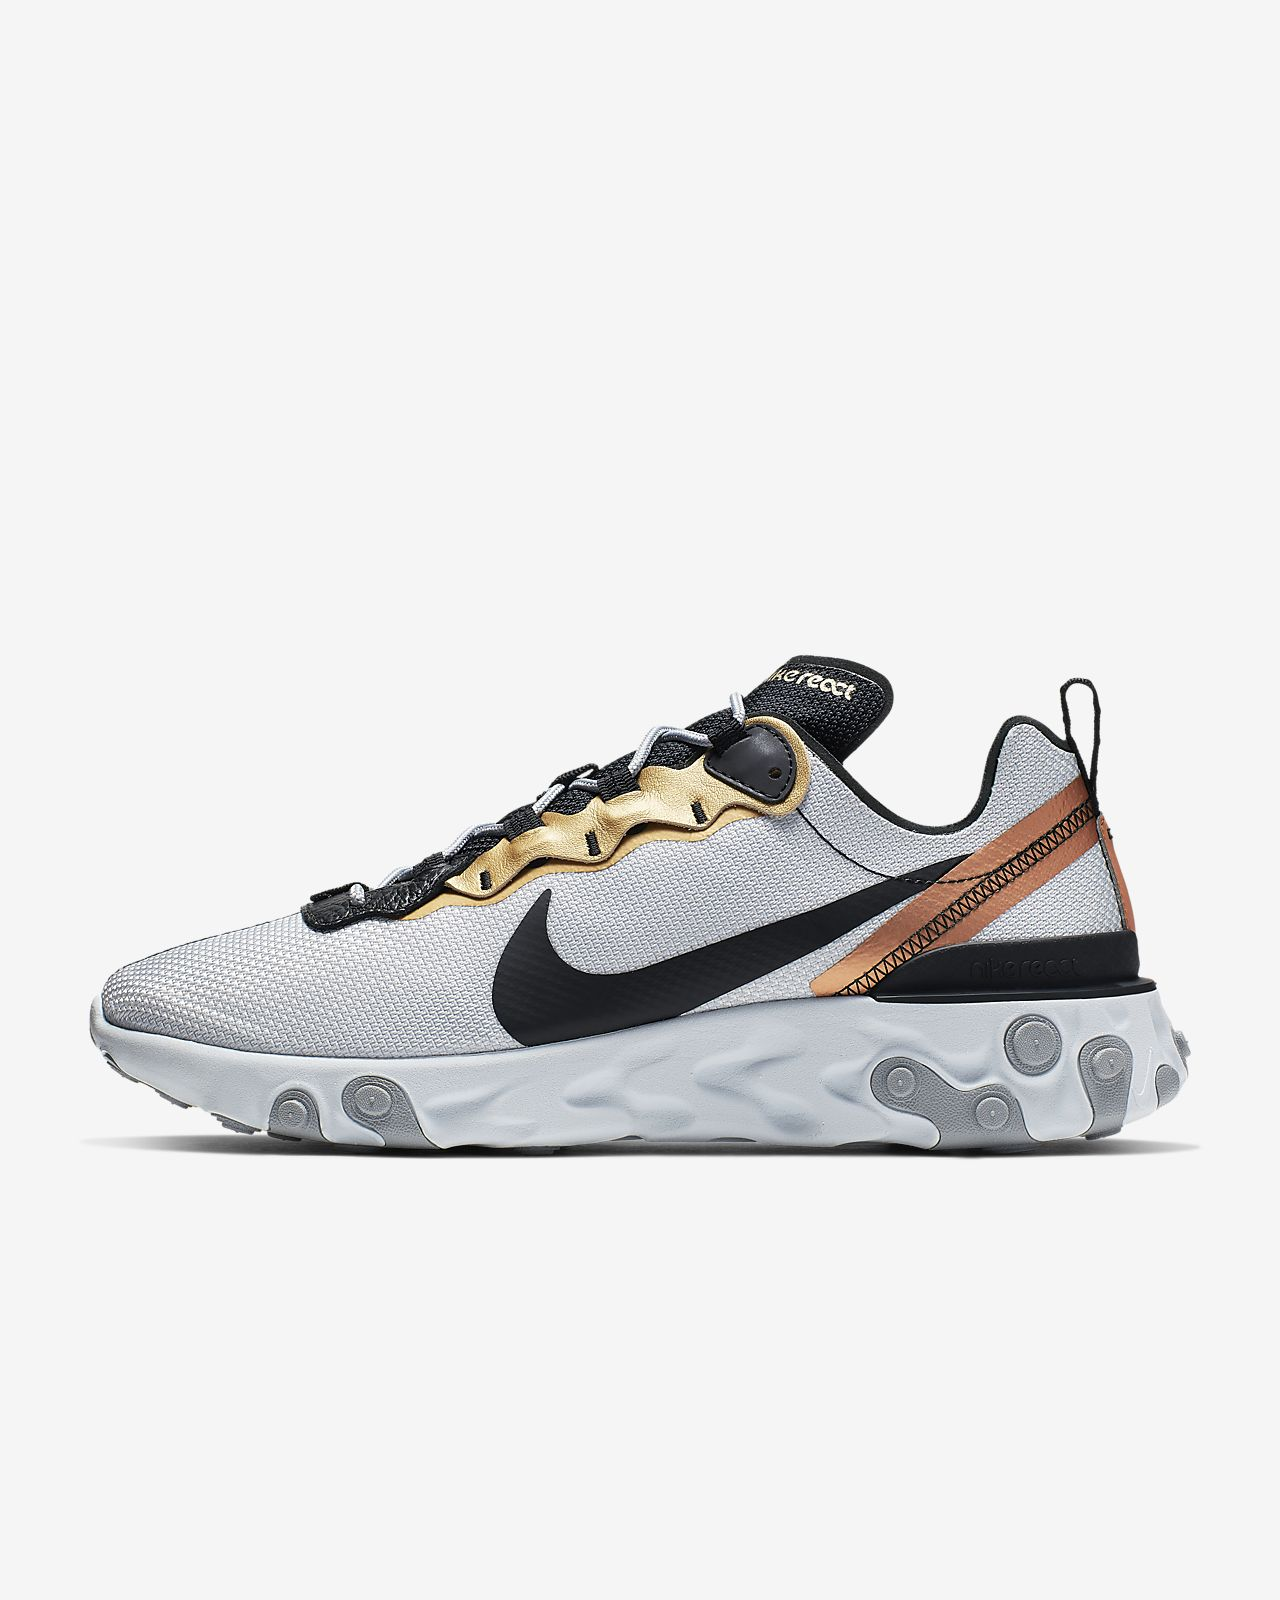 7d00ef1f64d Chaussure Nike React Element 55 pour Homme. Nike.com CA